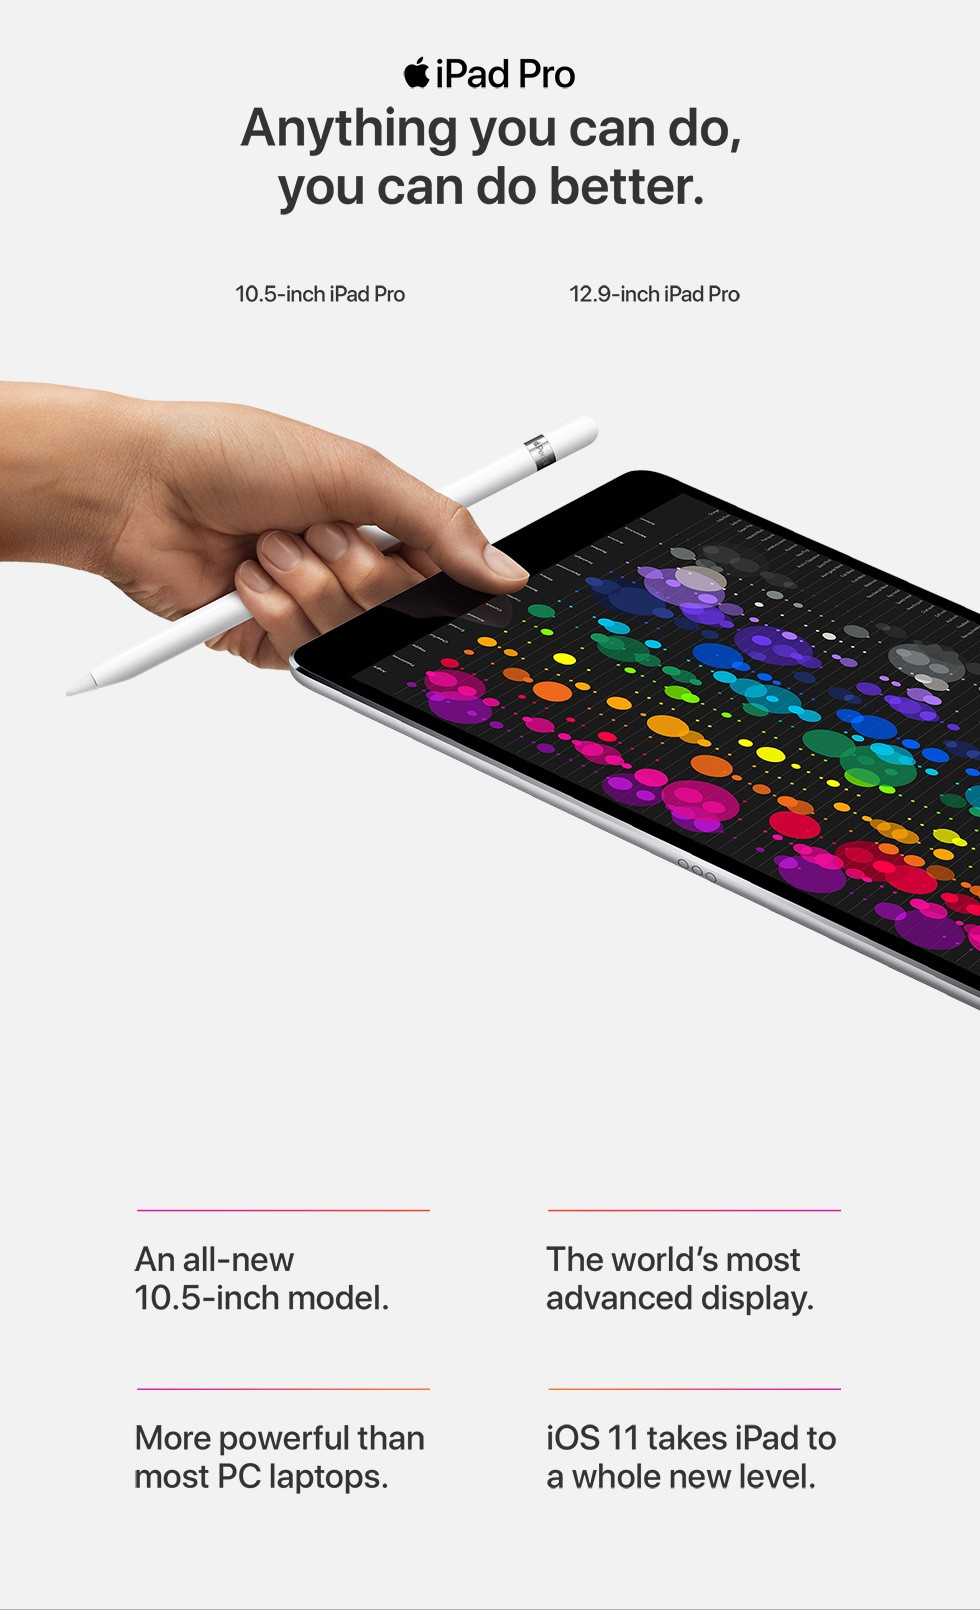 iPad Pro Anything you can do, you can do better. 10.5-inch iPad Pro 12.9-inch iPad Pro